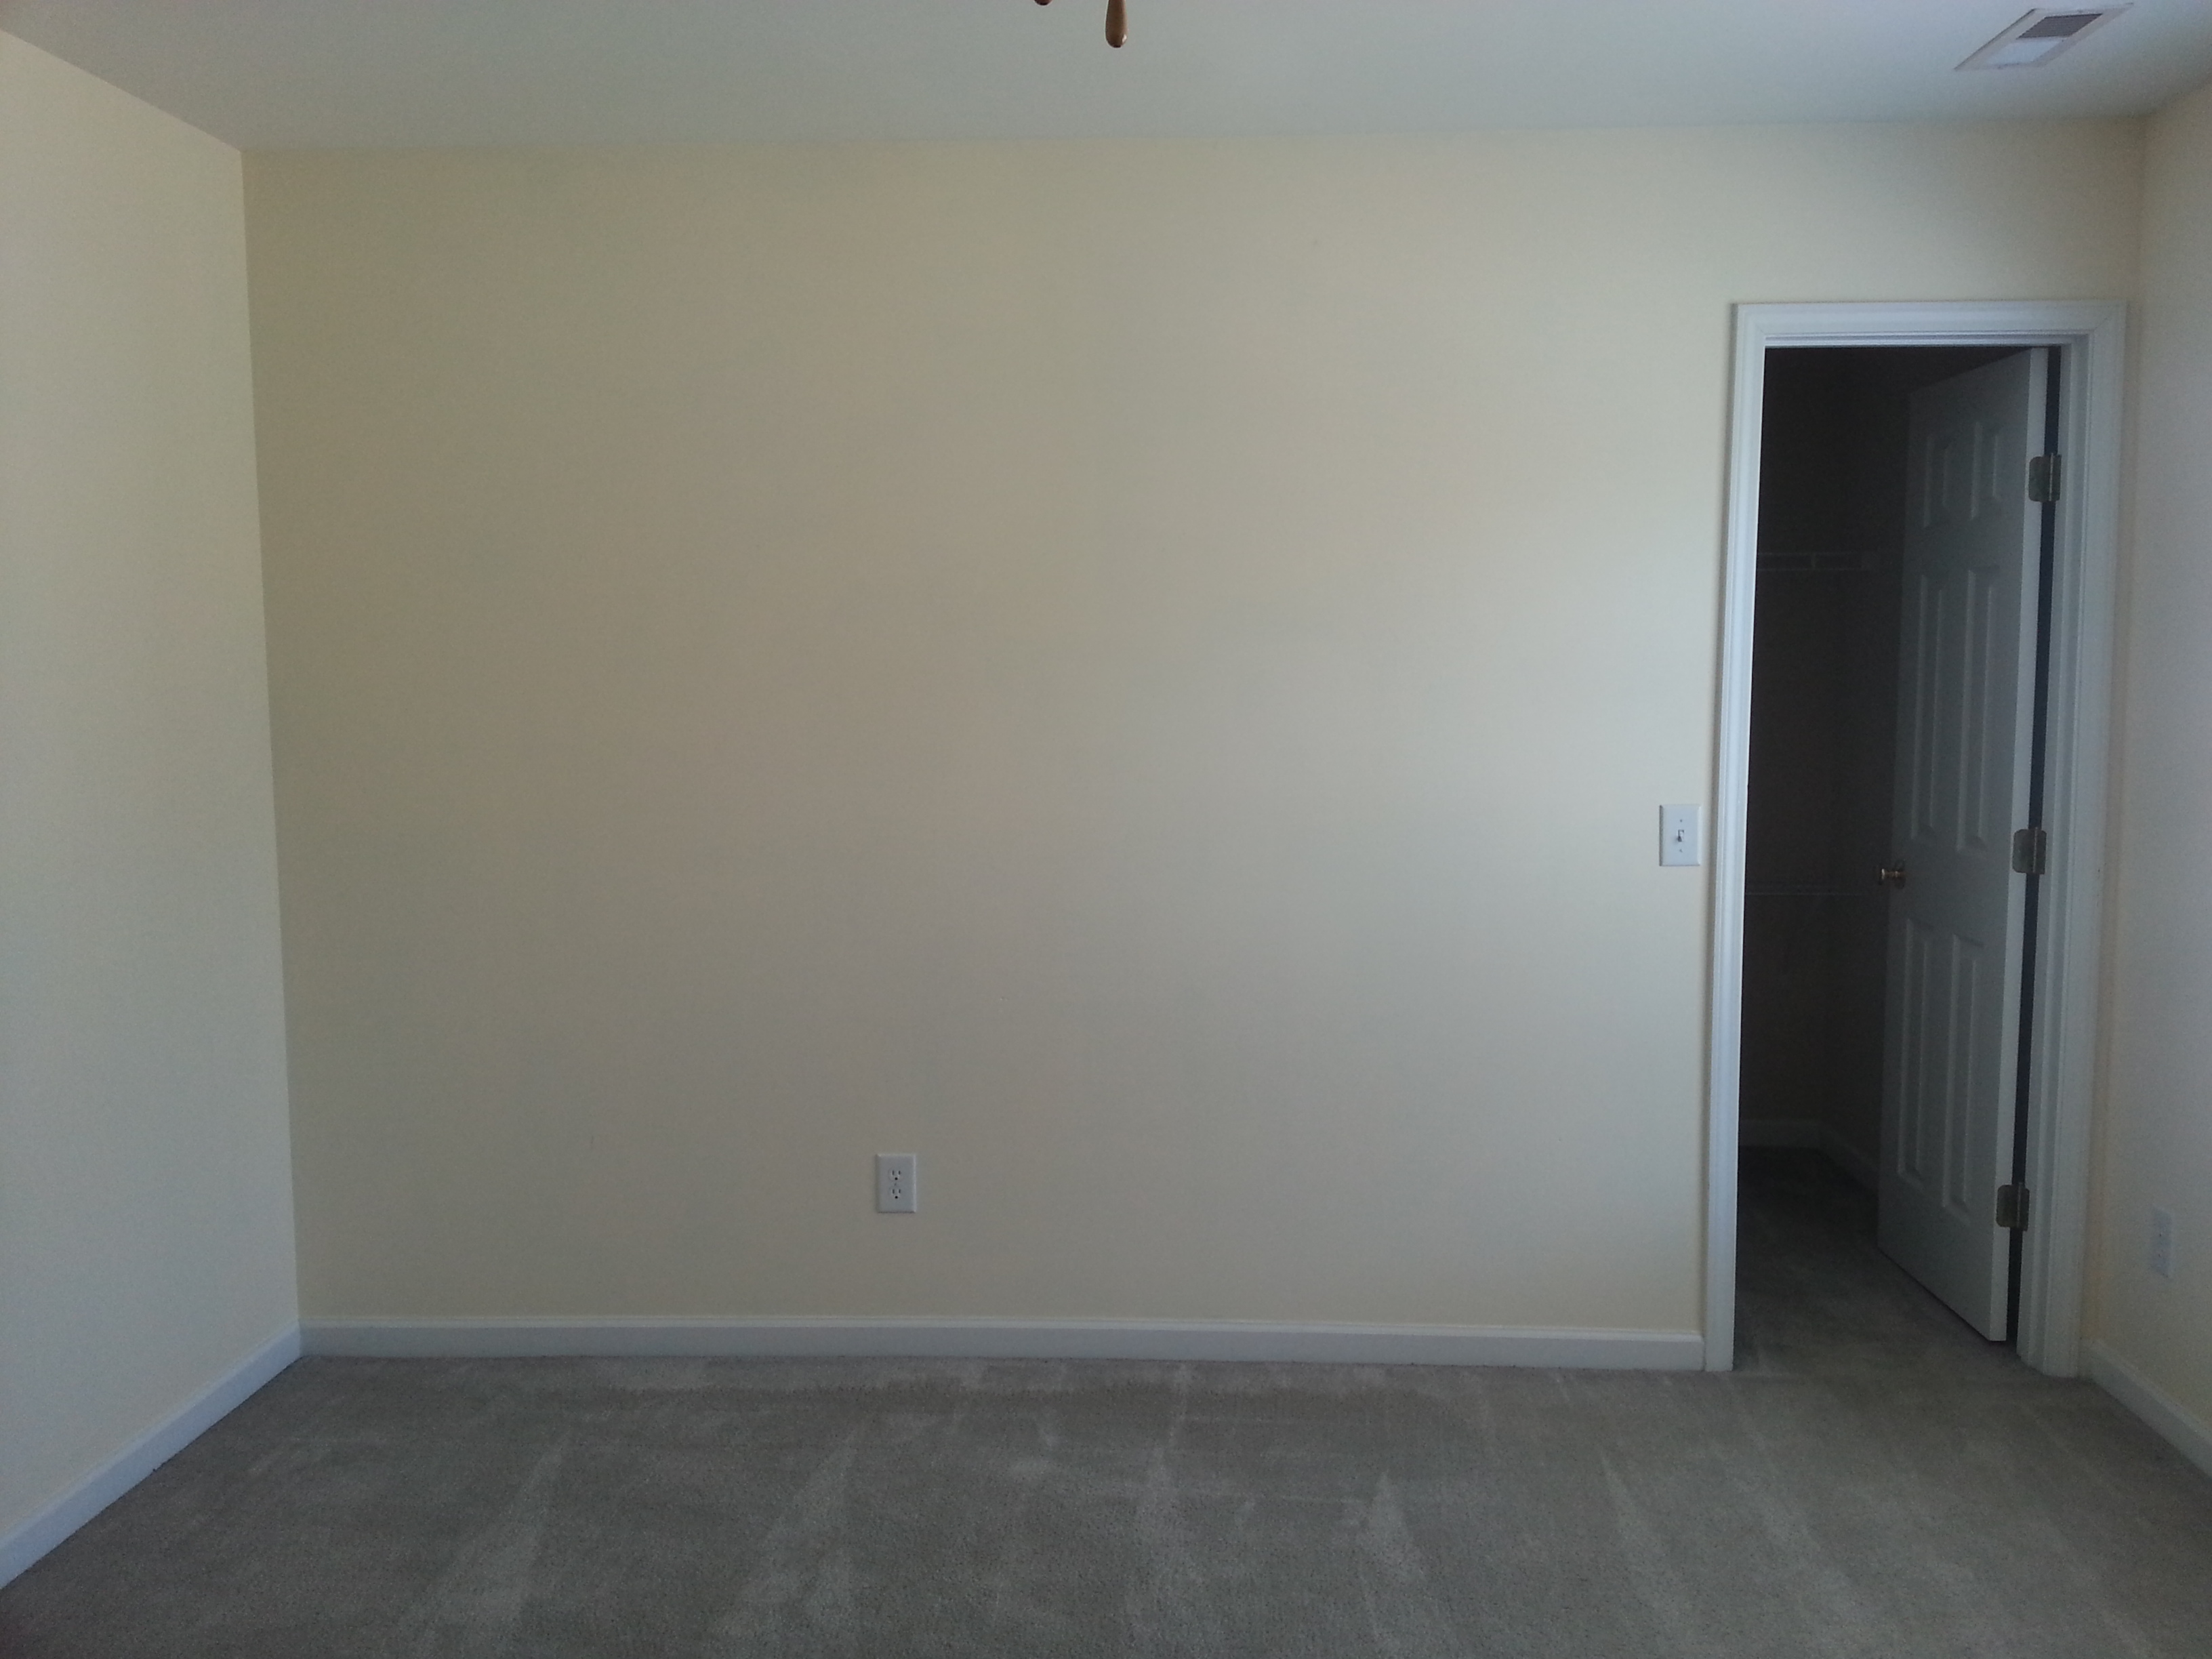 Empty master bedroom with bed - Viewing Gallery For Empty Bedroom With Bed